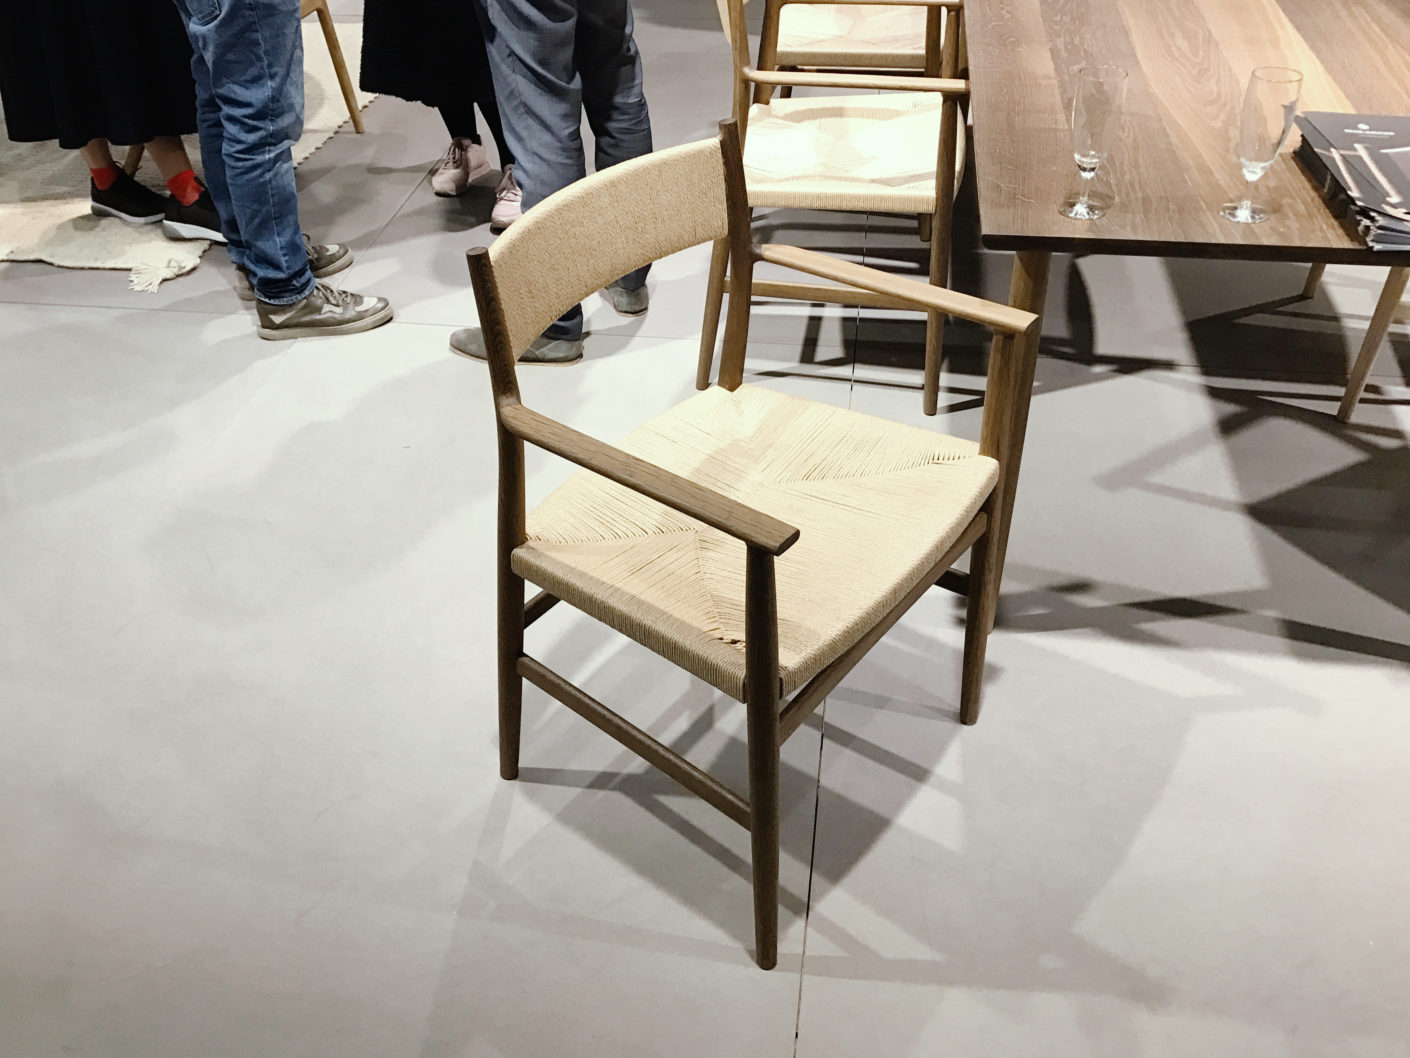 Stockholm Furniture and Light Fair 2018, Brdr. Krueger, Arv, Stylepark